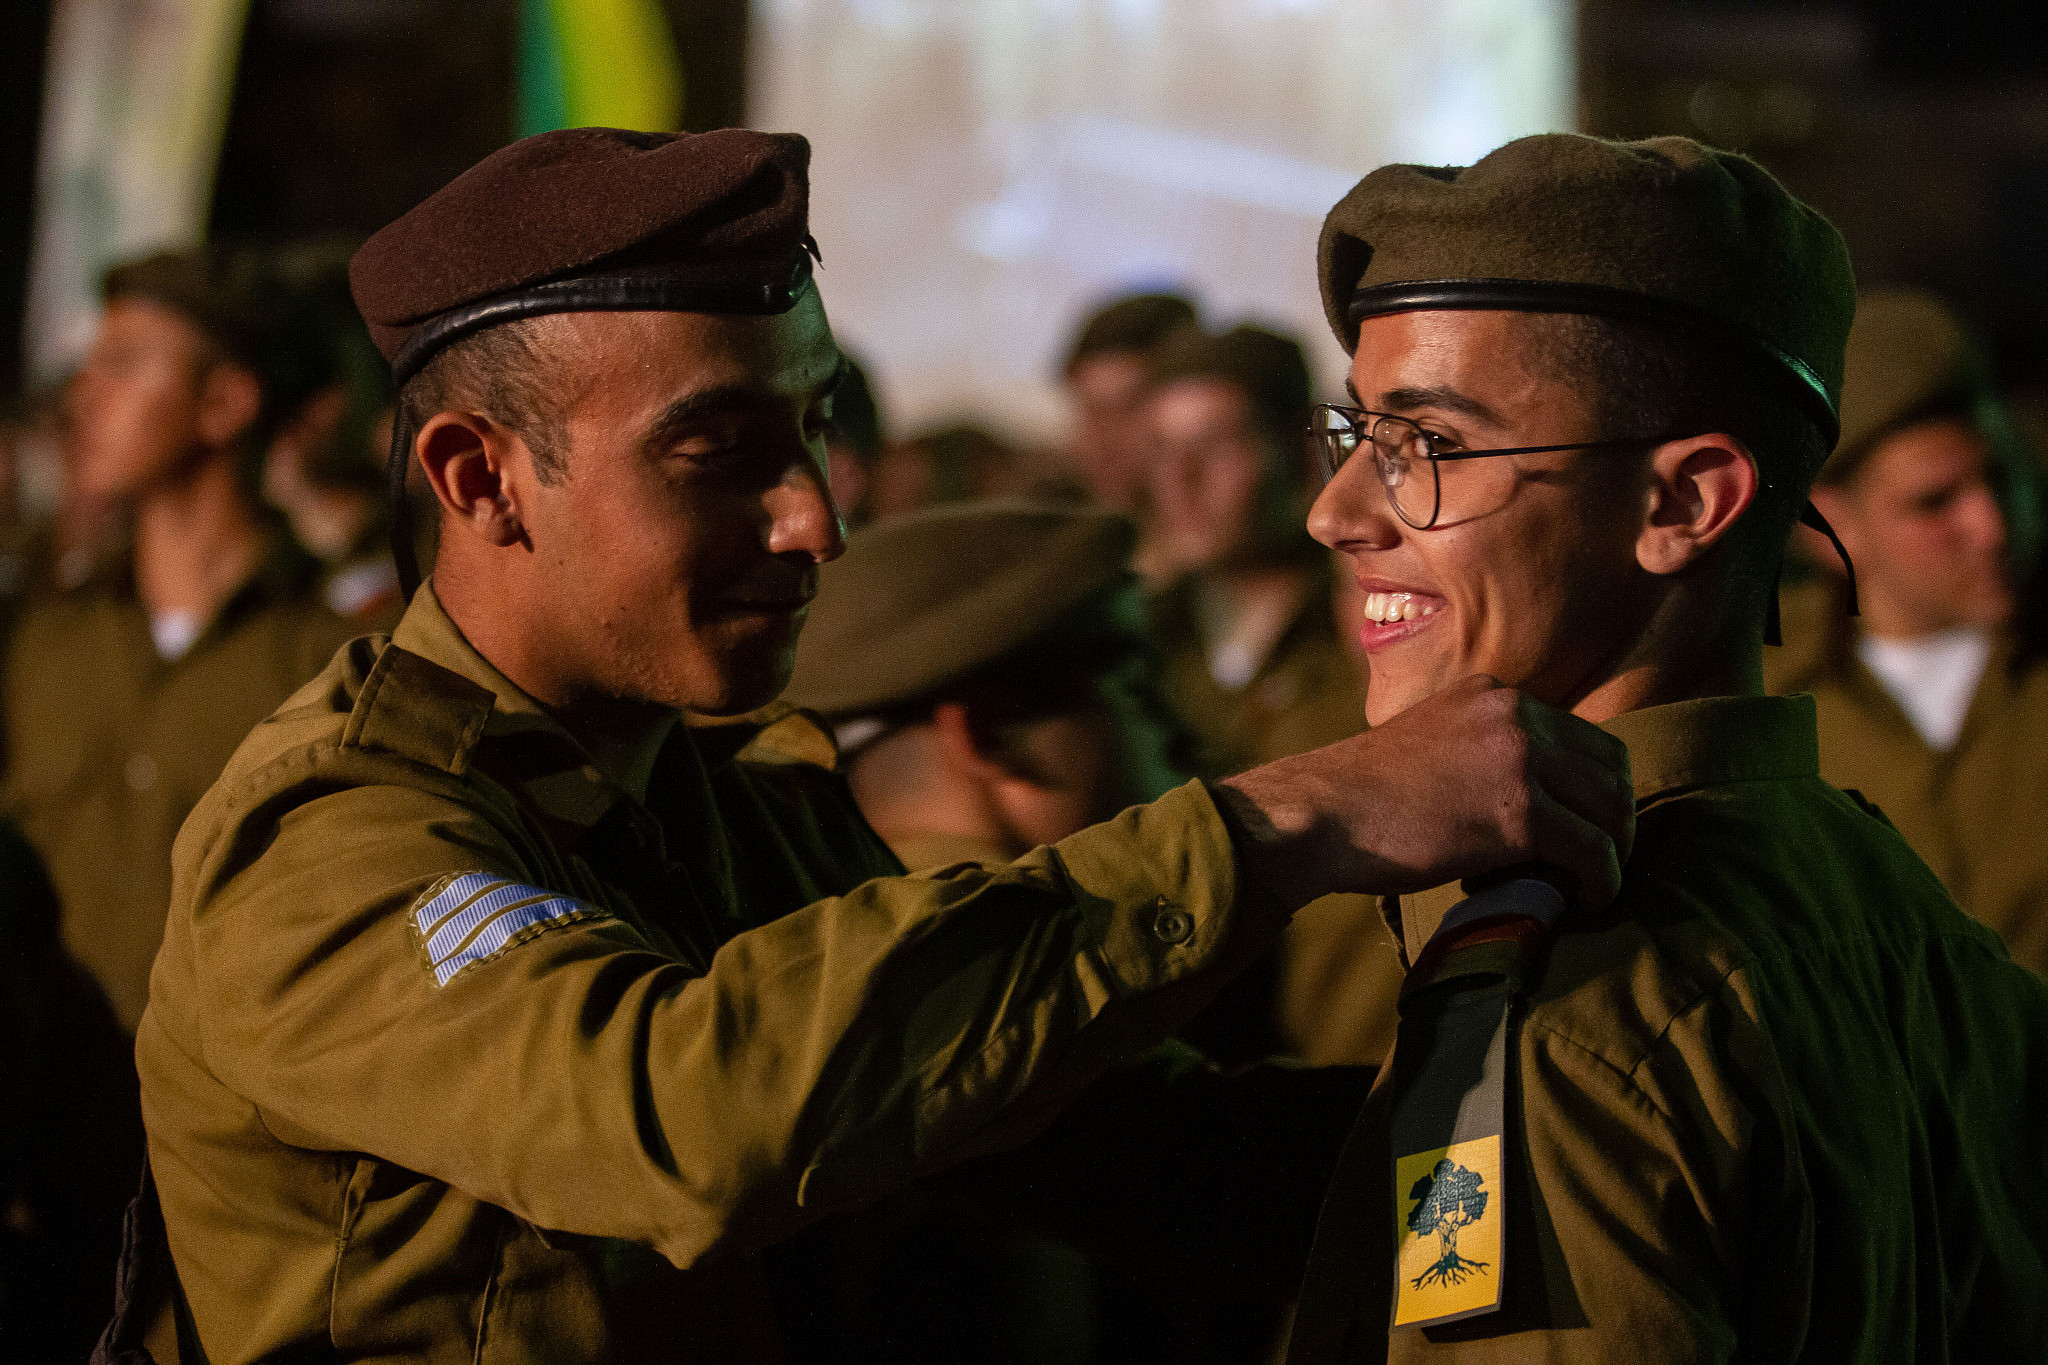 Soldiers in the Golani Brigade, an infantry unit with a high proportion of Mizrahim, attend their swearing-in ceremony at the Divisional Training Base near Kfar Kara, on February 6, 2020. (Flash90)